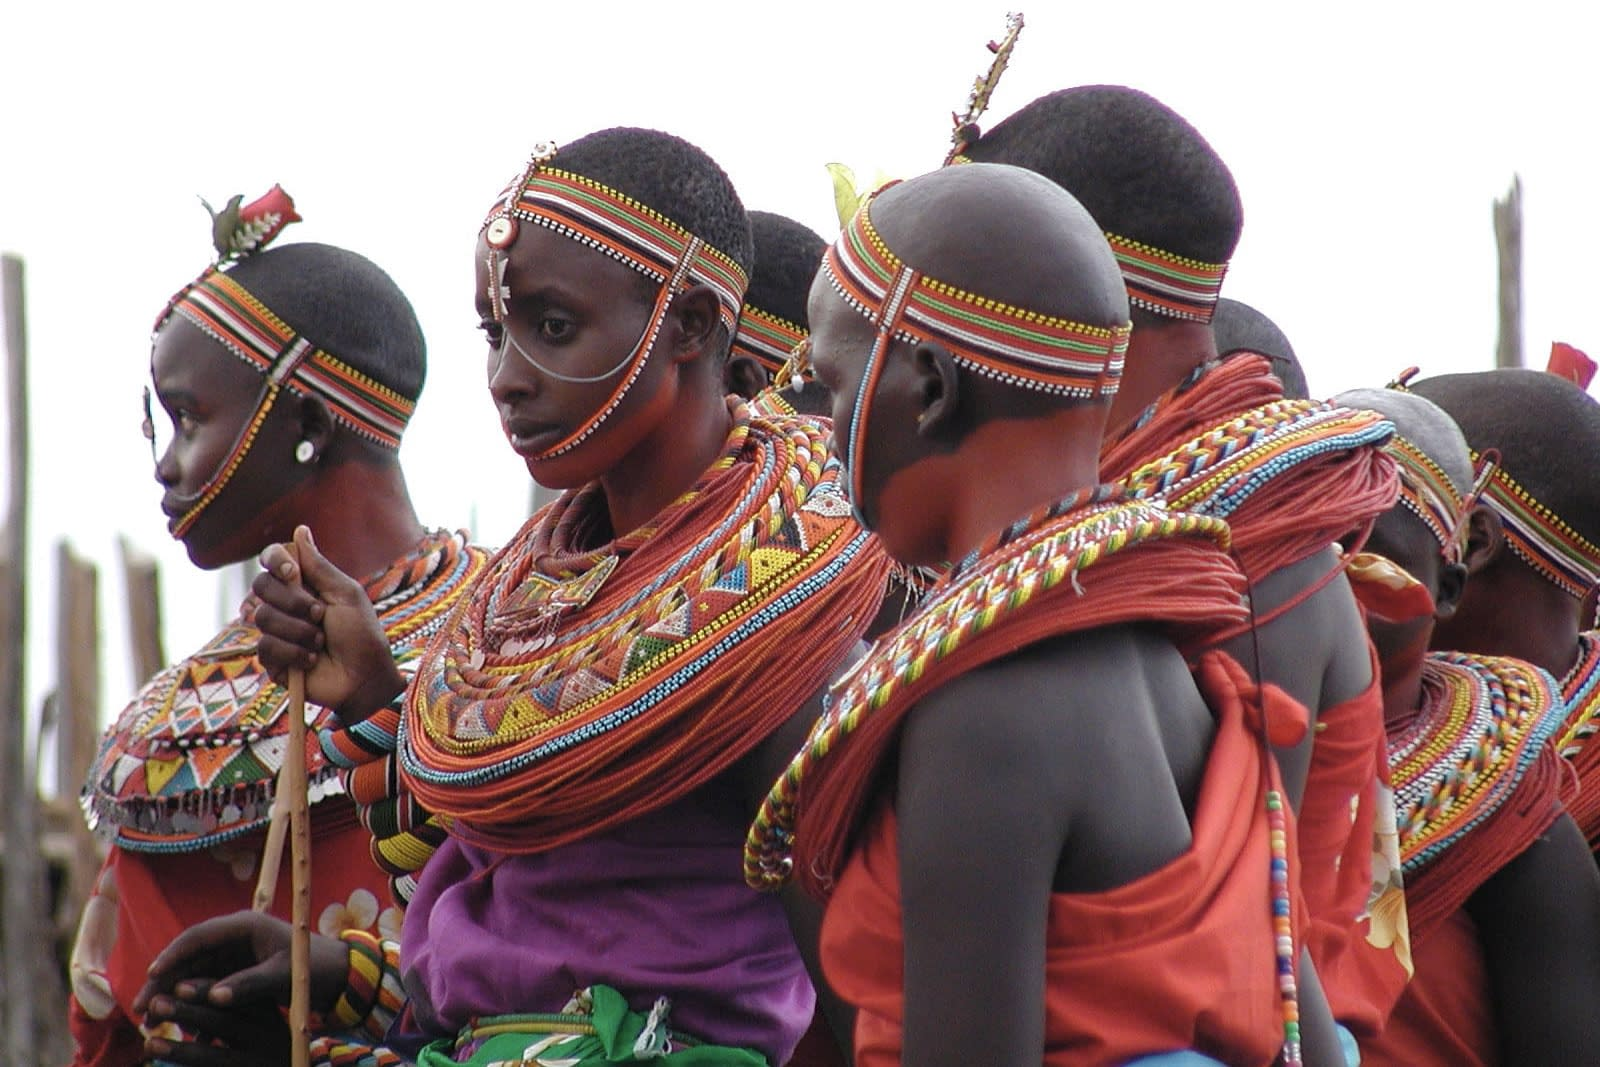 Samburu people dressed in traditional clothing including red, white, green and black headdresses and beaded collars